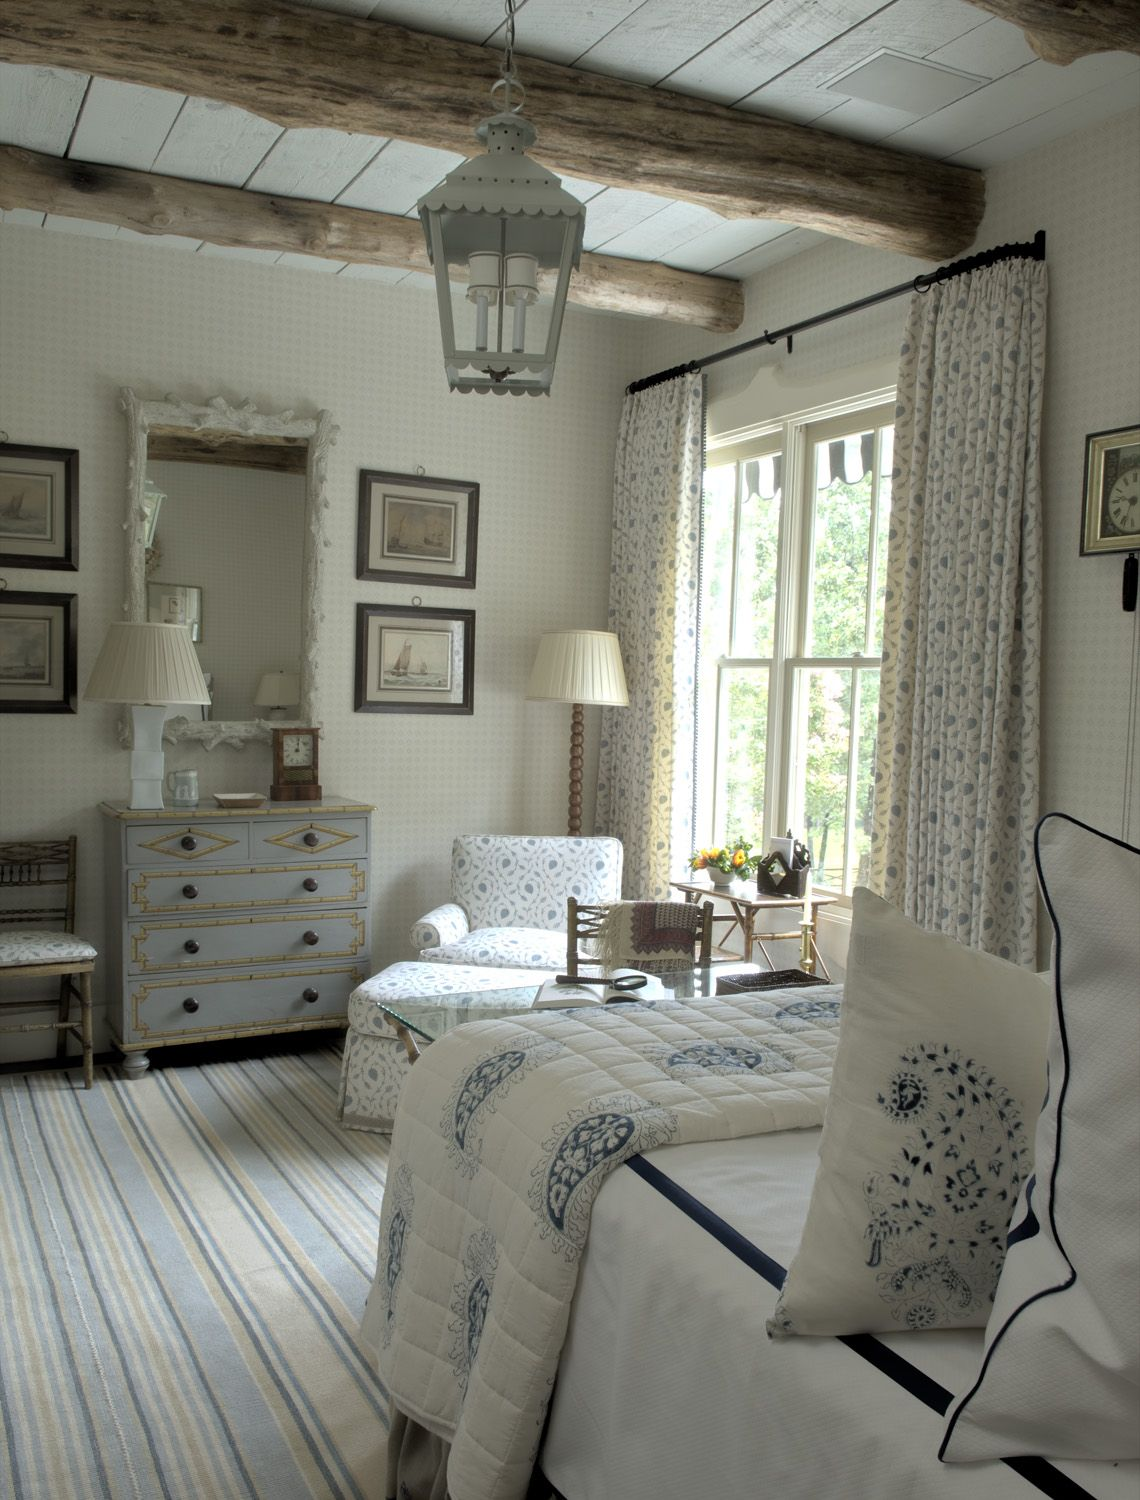 Romantisches schlafzimmer interieur love the forniture  novedoso  pinterest  gastzimmer rustikal